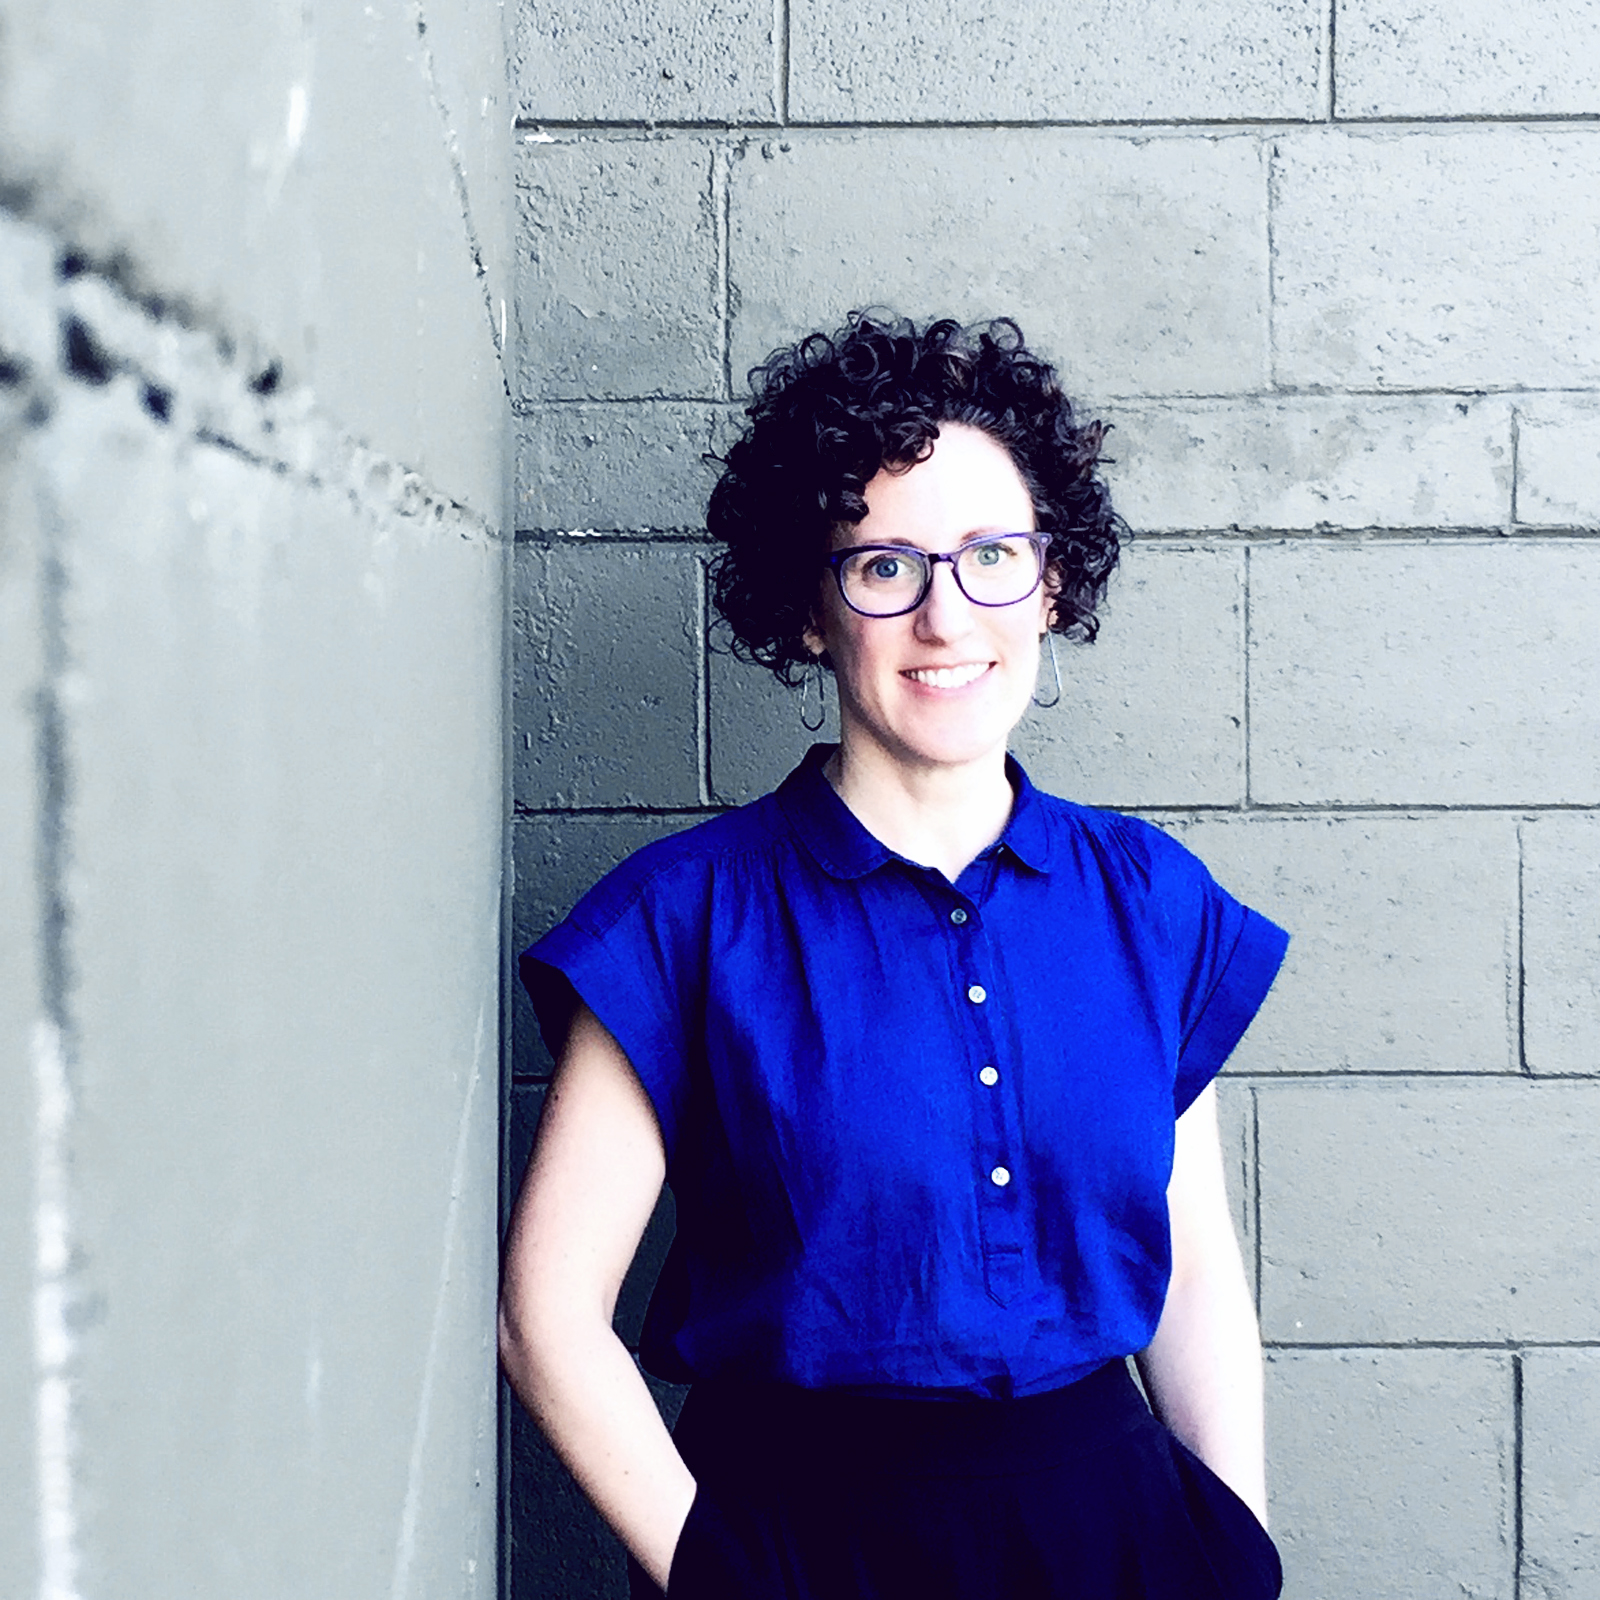 Alison Markowitz-chan aIA - Project ArchitectAlison developed a passion for custom residential design while living in San Francisco, working on a variety of projects including renovating Eichler homes. She has also lived and worked in several different cities and countries including Lausanne, Switzerland, and Eindhoven, Netherlands.Alison graduated from Northwestern with a degree in Materials Engineering and worked in that field before completing a Masters in Architecture at the University of Minnesota. Having a technical background and living abroad have given her a wide breadth of experiences to draw from when creating unique solutions for clients. She is passionate about all of the details that go in to realizing a project, to craft delightful spaces that highlight both the materials used and the activities that happen within.